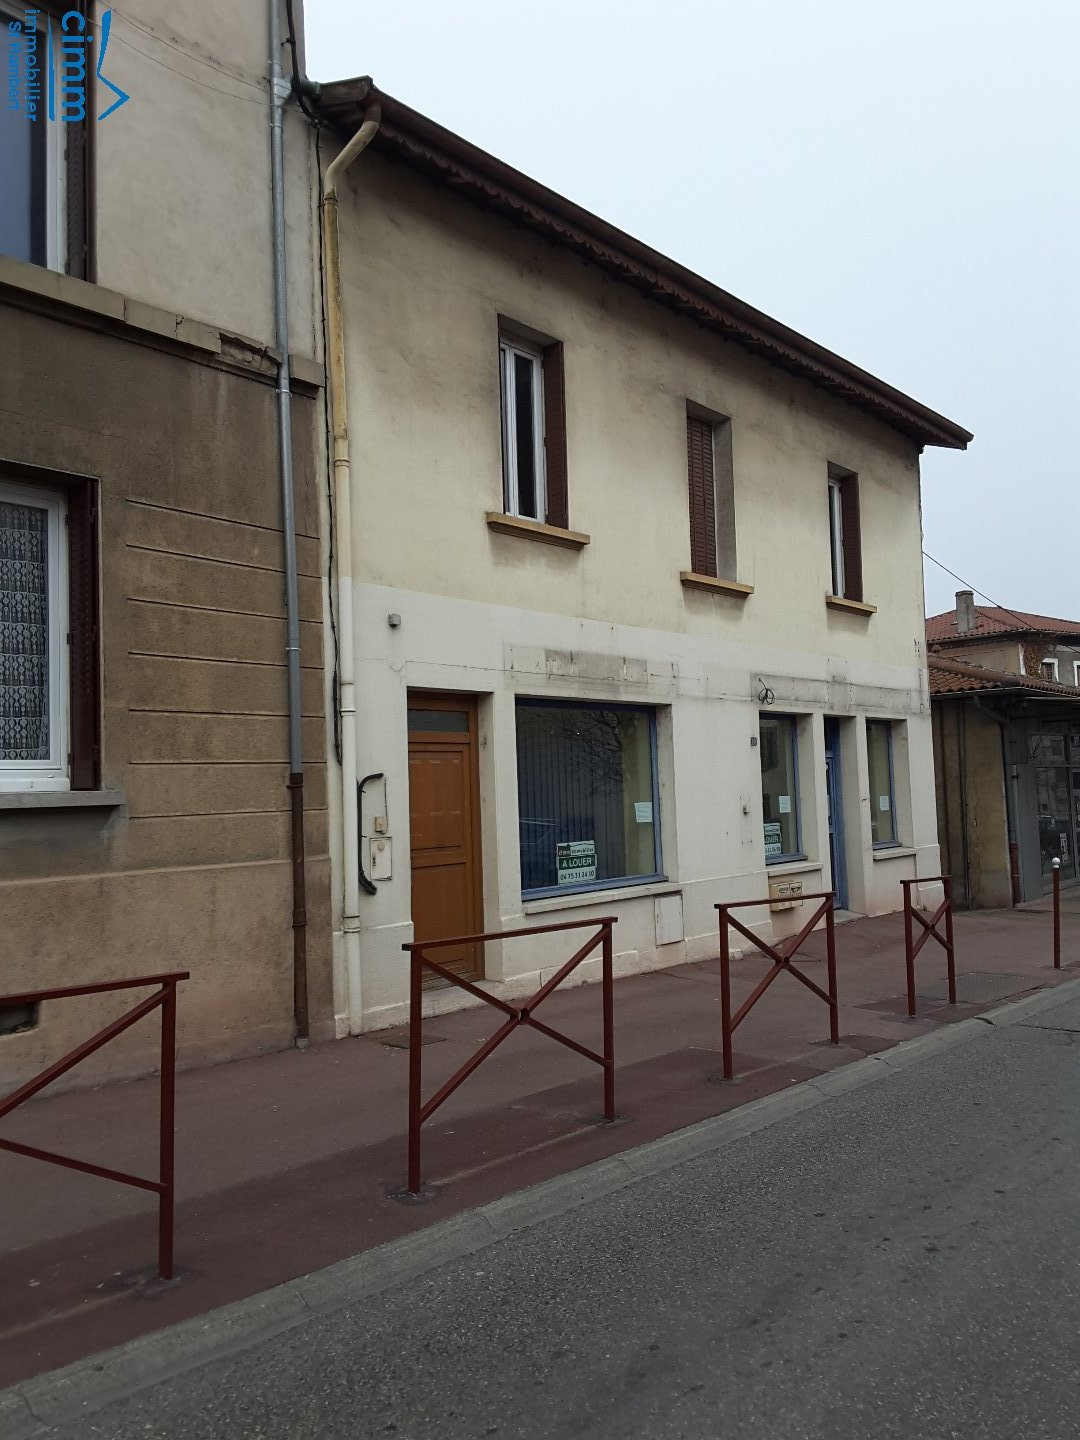 location local SAINT RAMBERT D'ALBON SAINT RAMBERT D'ALBON 26140